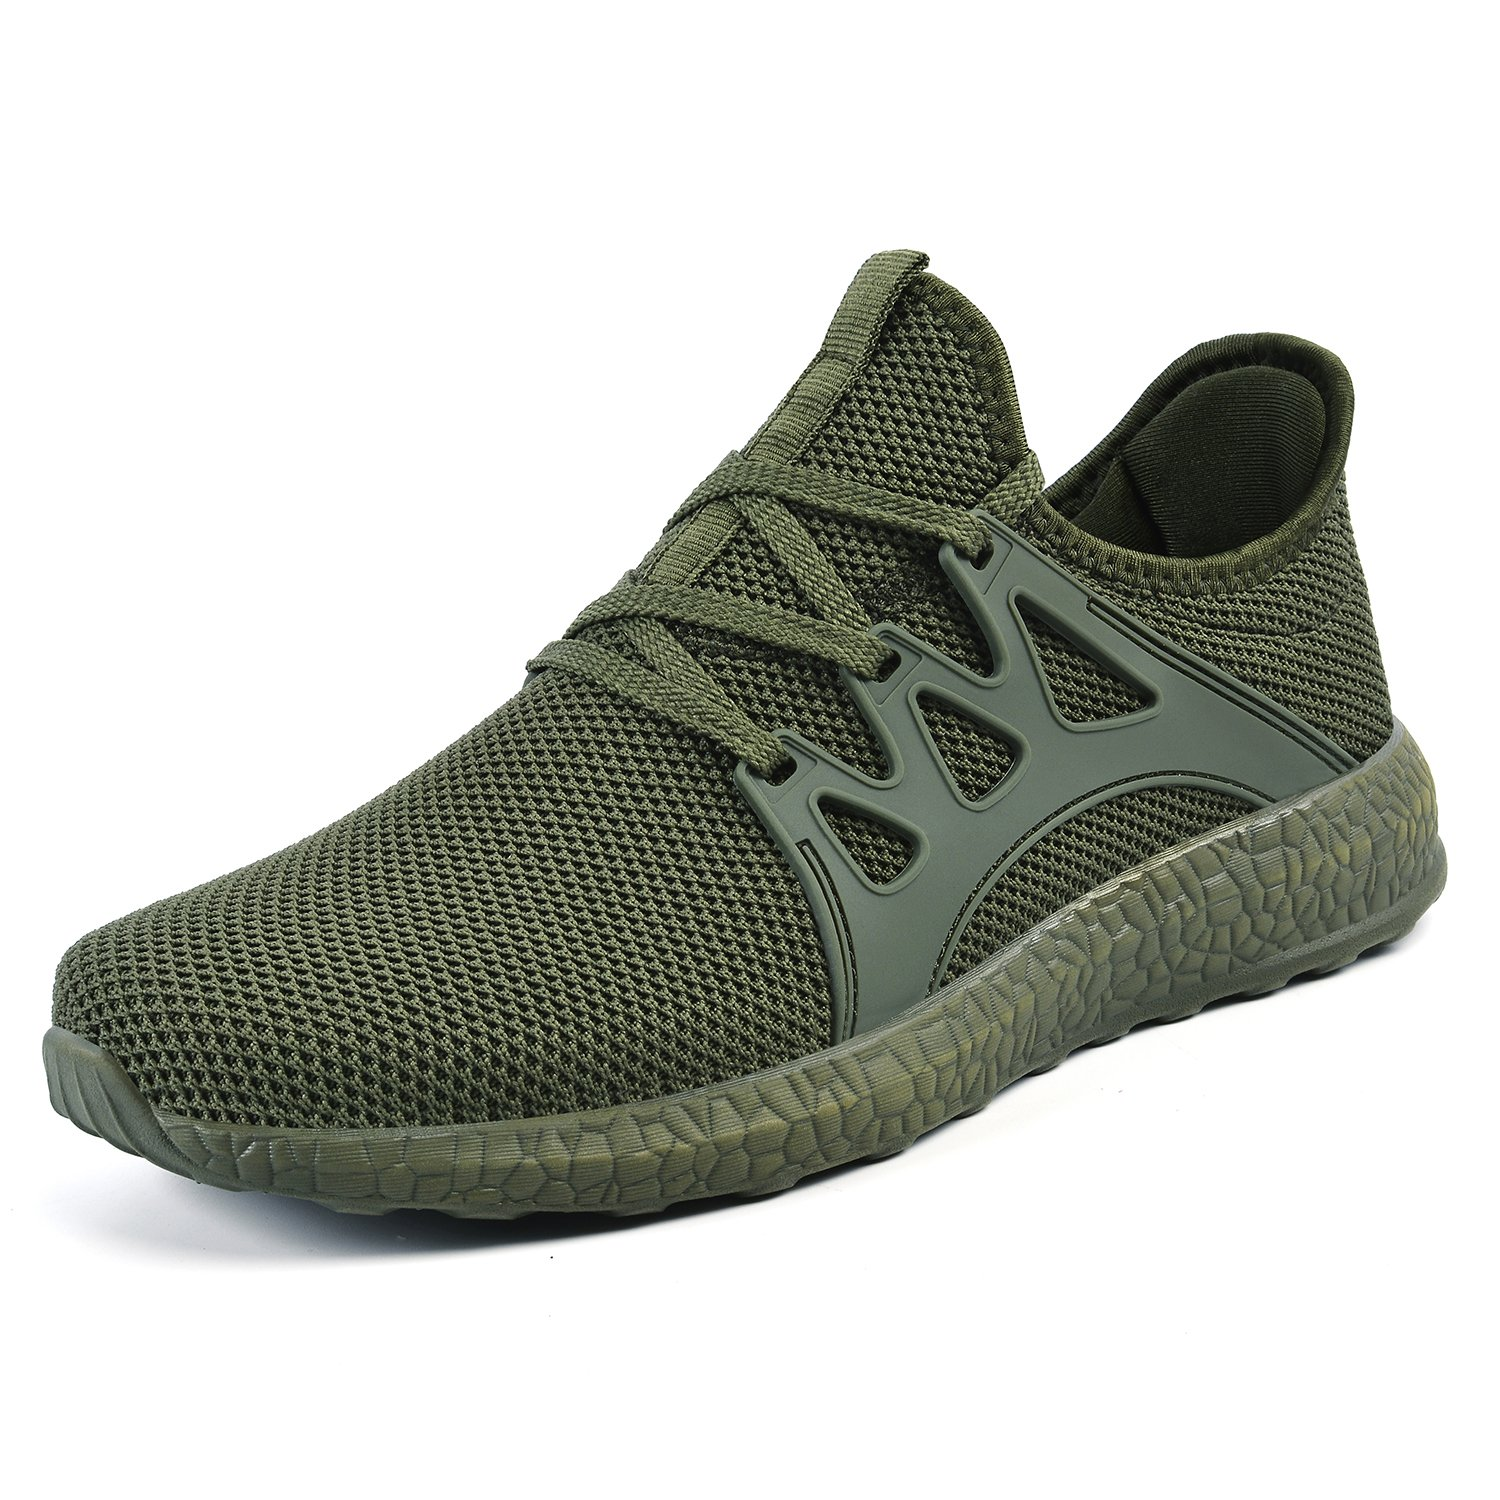 Feetmat Womens Sneakers Ultra Lightweight Breathable Mesh Walking Gym Tennis Athletic Running Shoes B07CCHRWJB 9 M US|Green